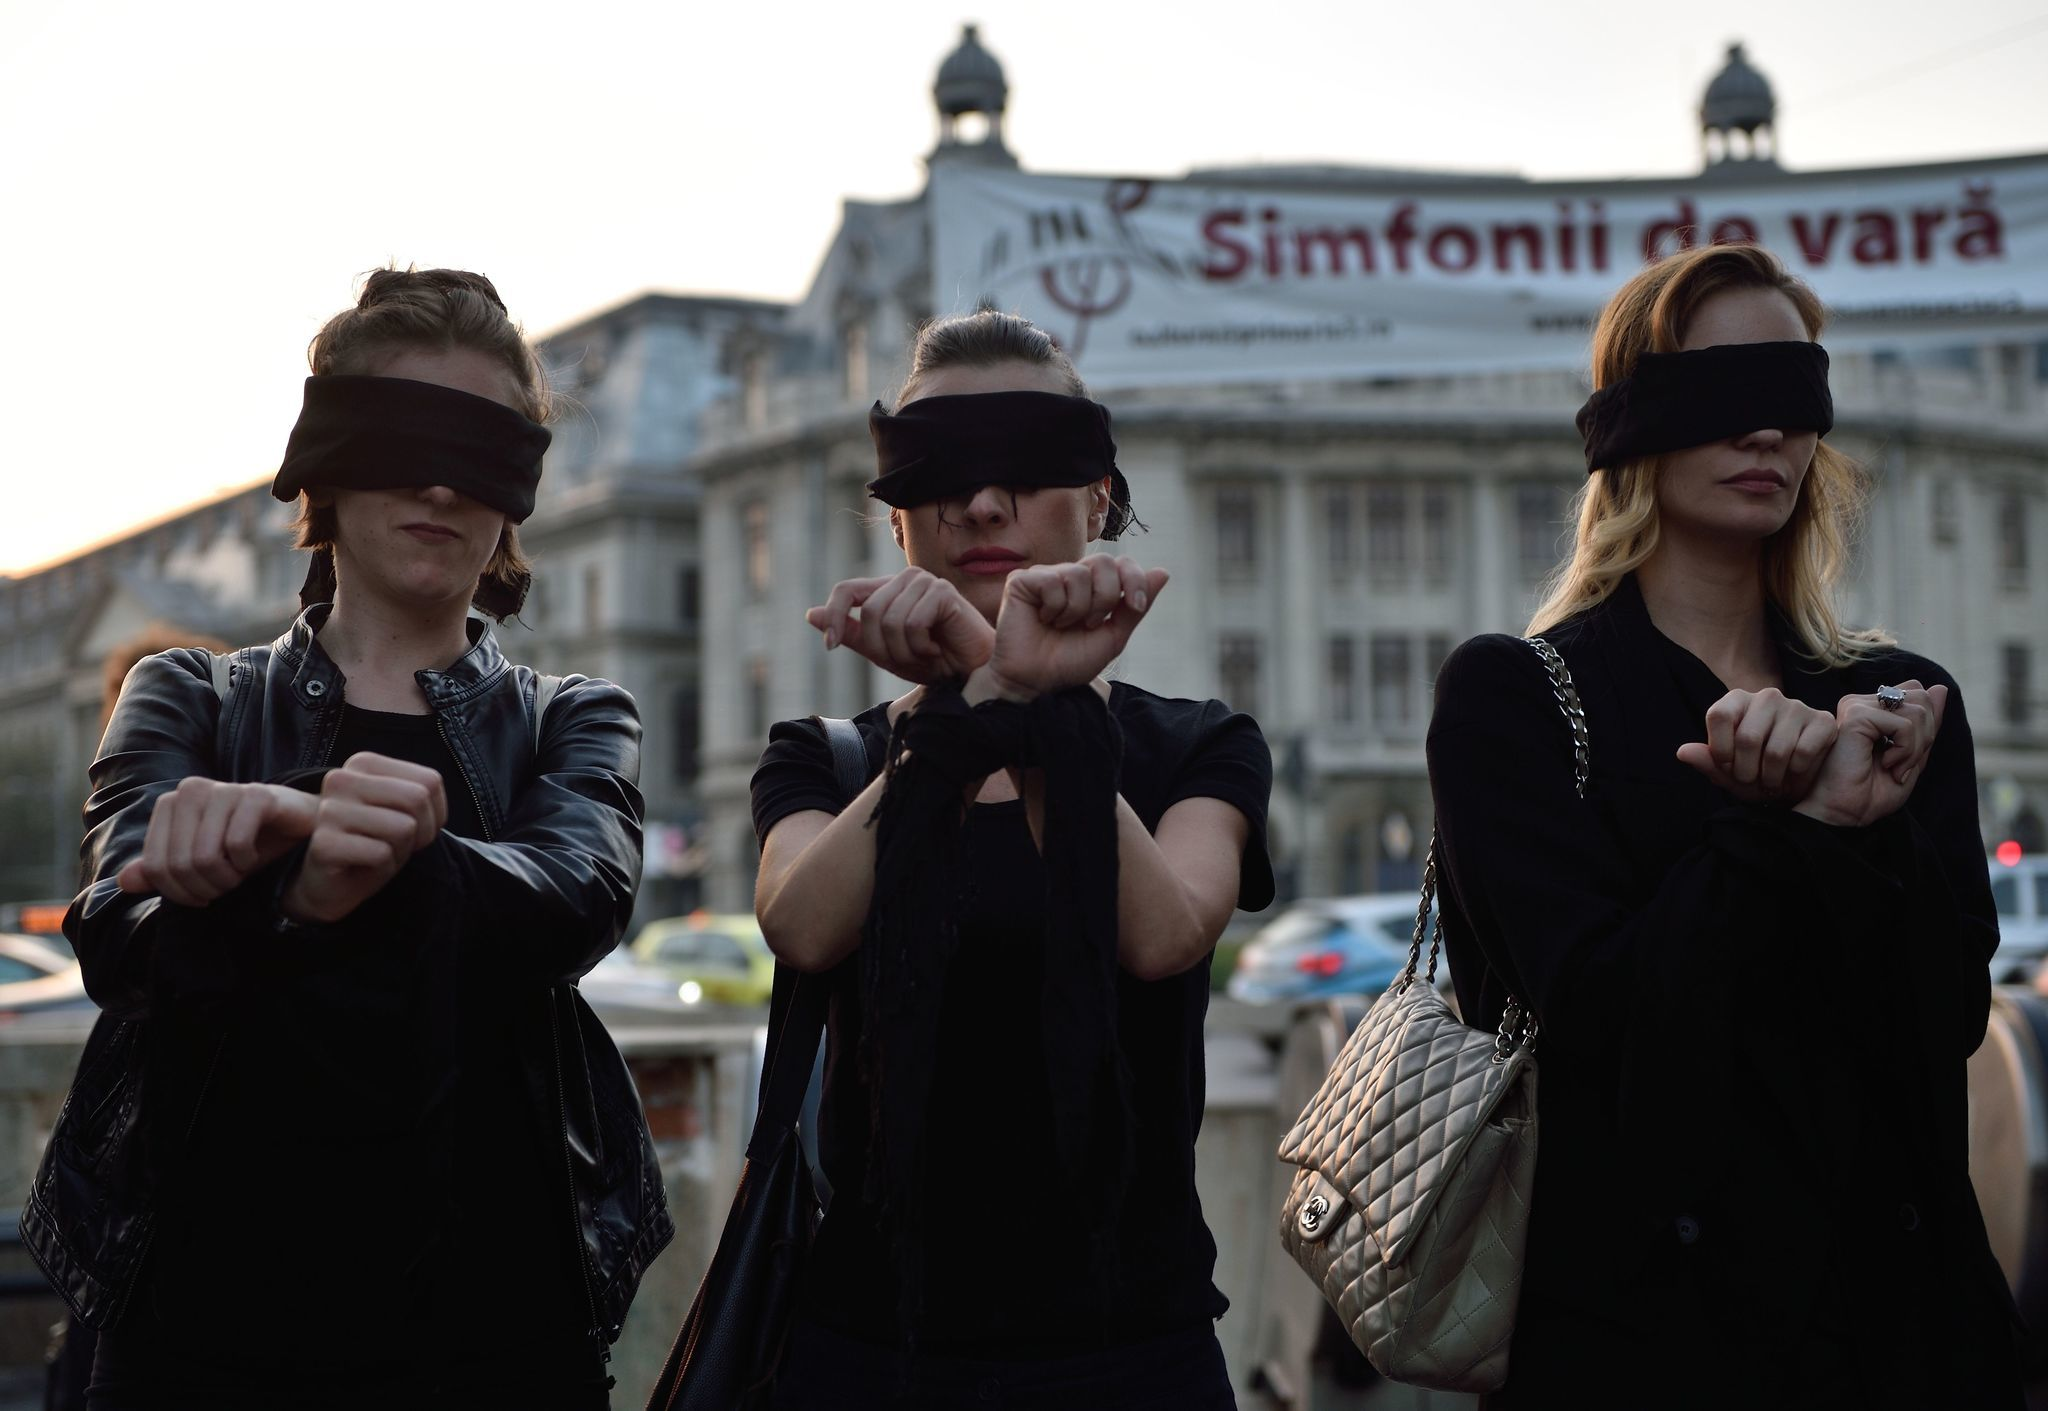 Romanian women in Bucharest show solidarity with Polish women protesting a proposed abortion law in Poland.